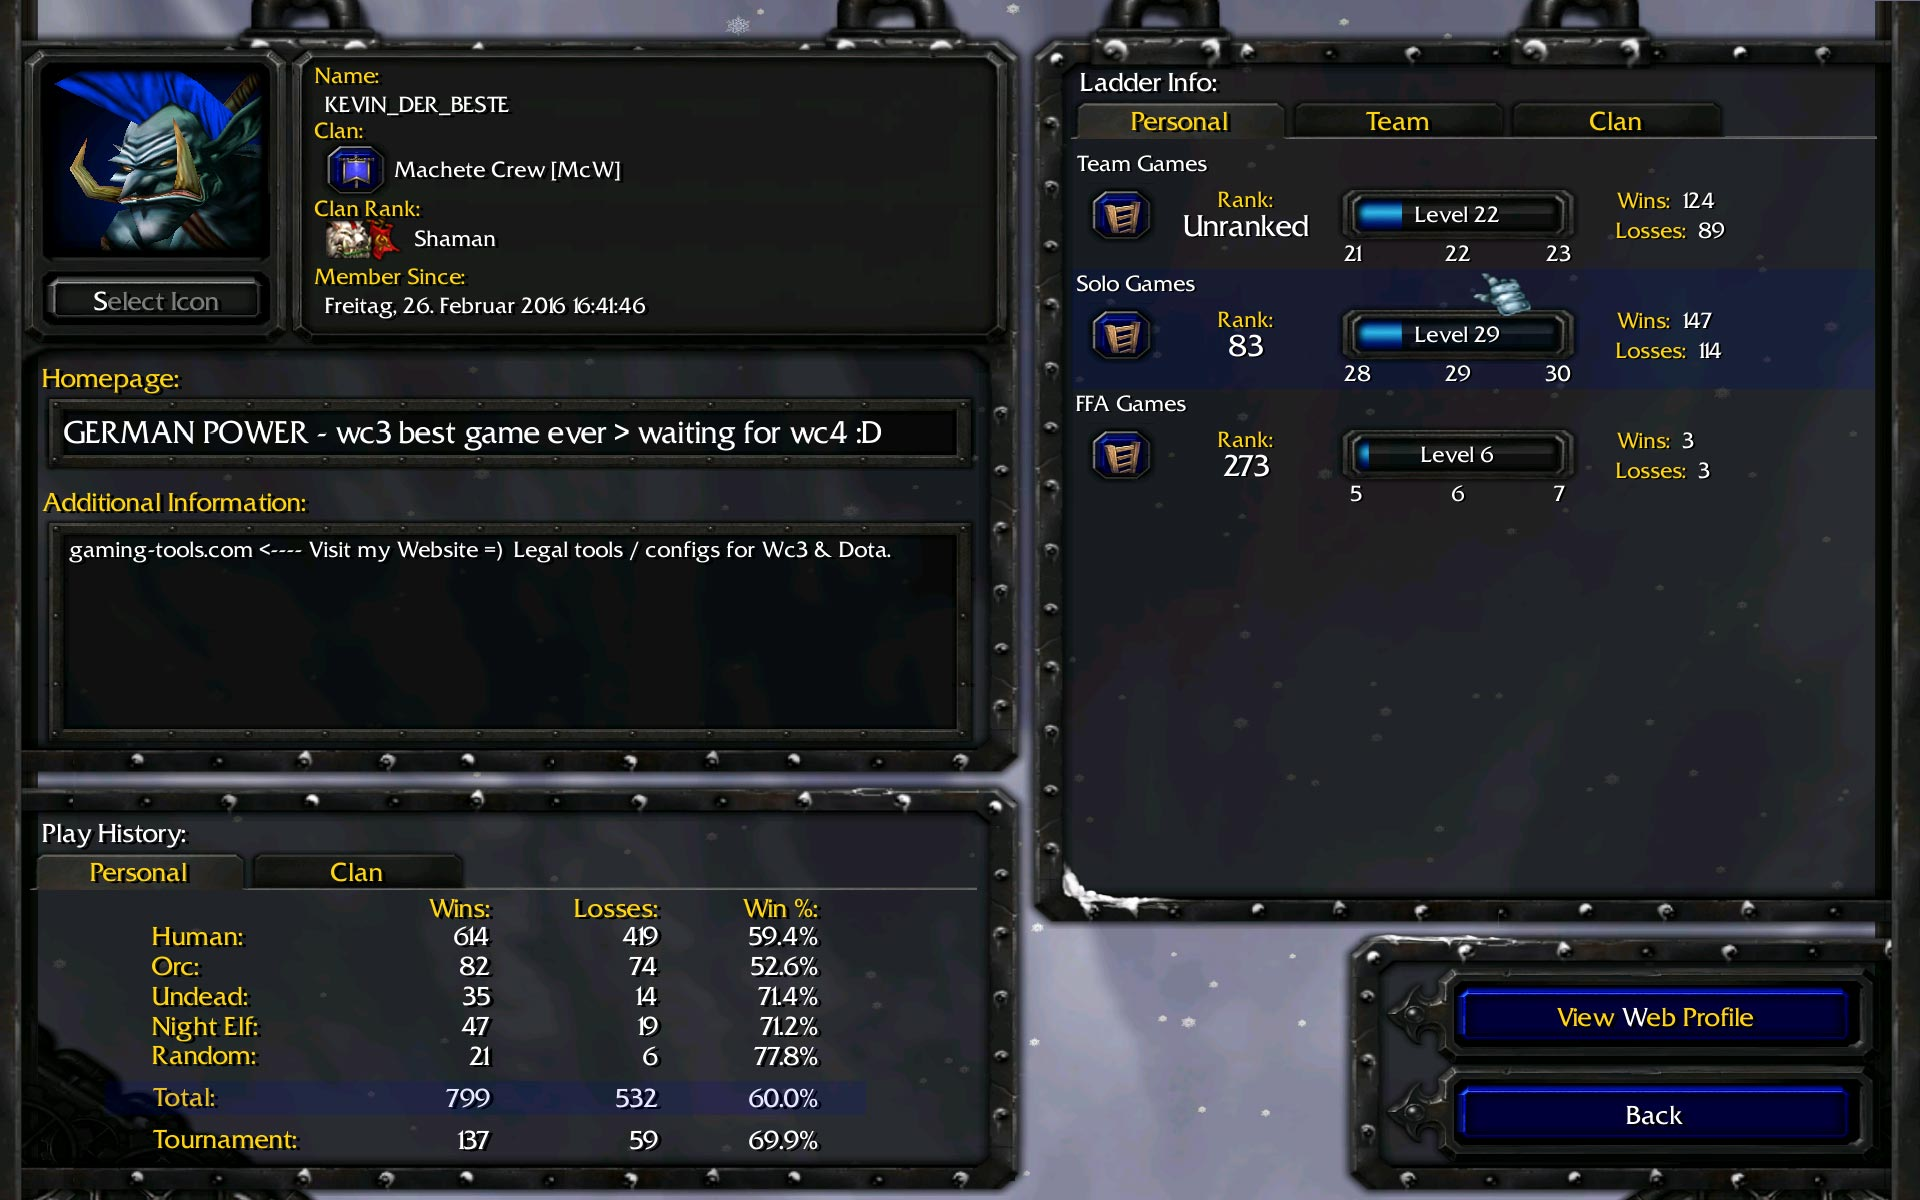 warcraft-3-ingame-profile-screenshot-good-player